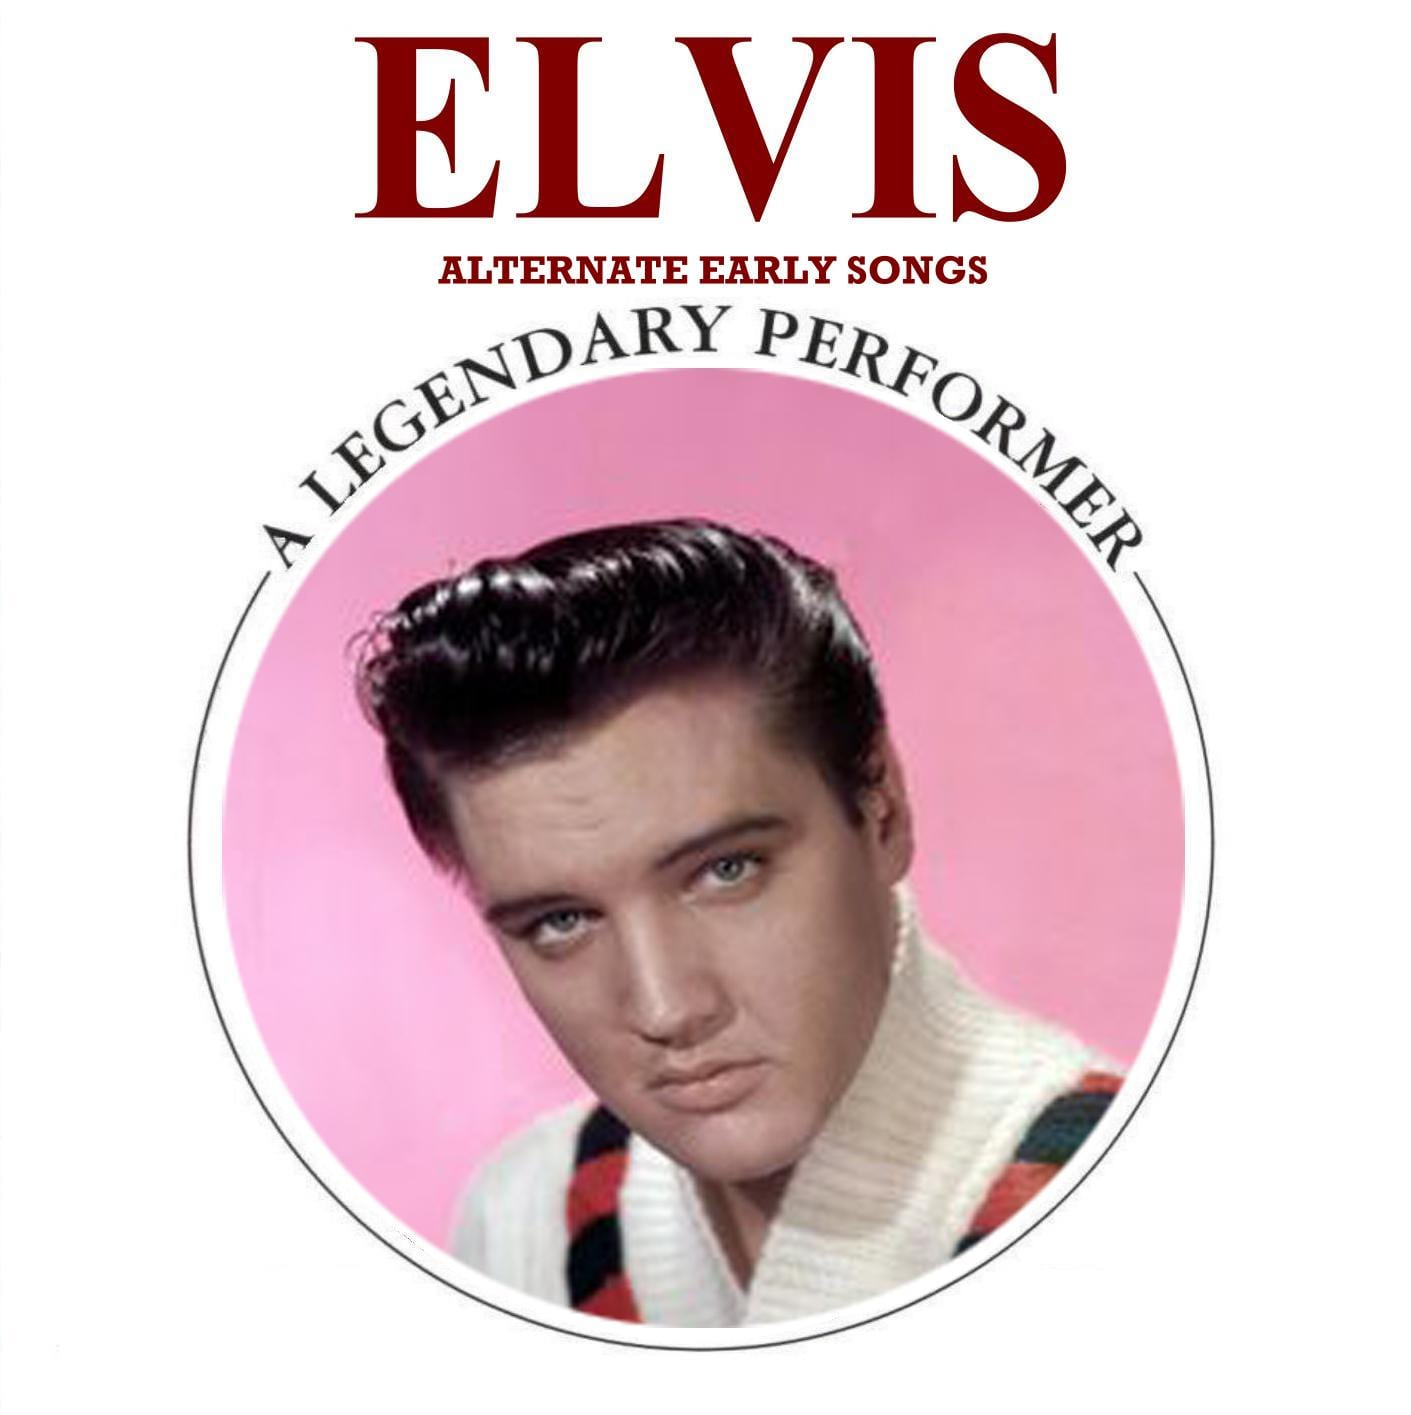 Elvis Presley - A Legendary Performer, Alternate Early Songs (2011) CD 9